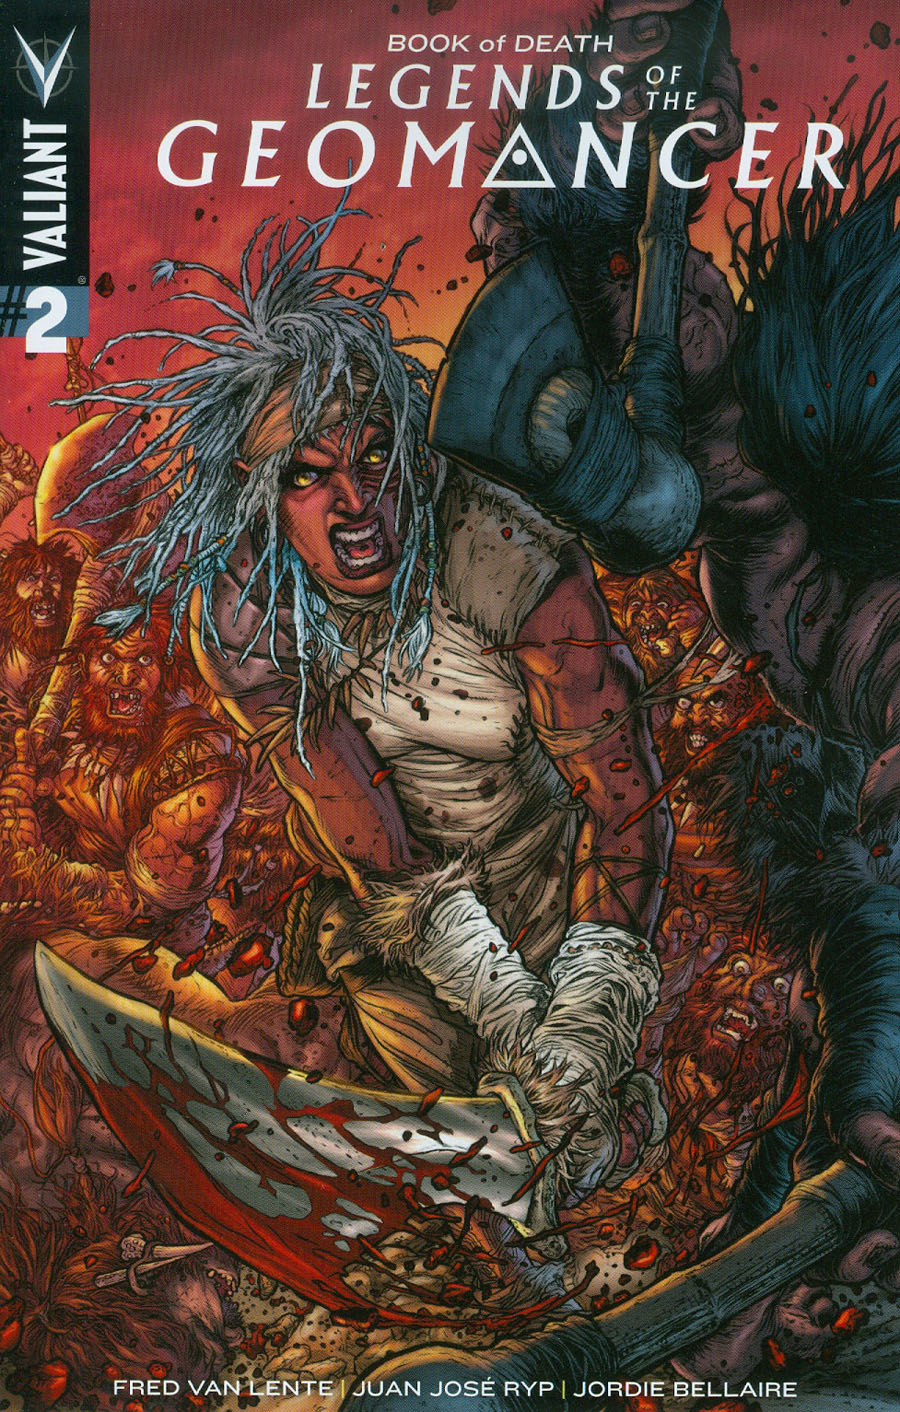 Book Of Death Legends Of The Geomancer #2